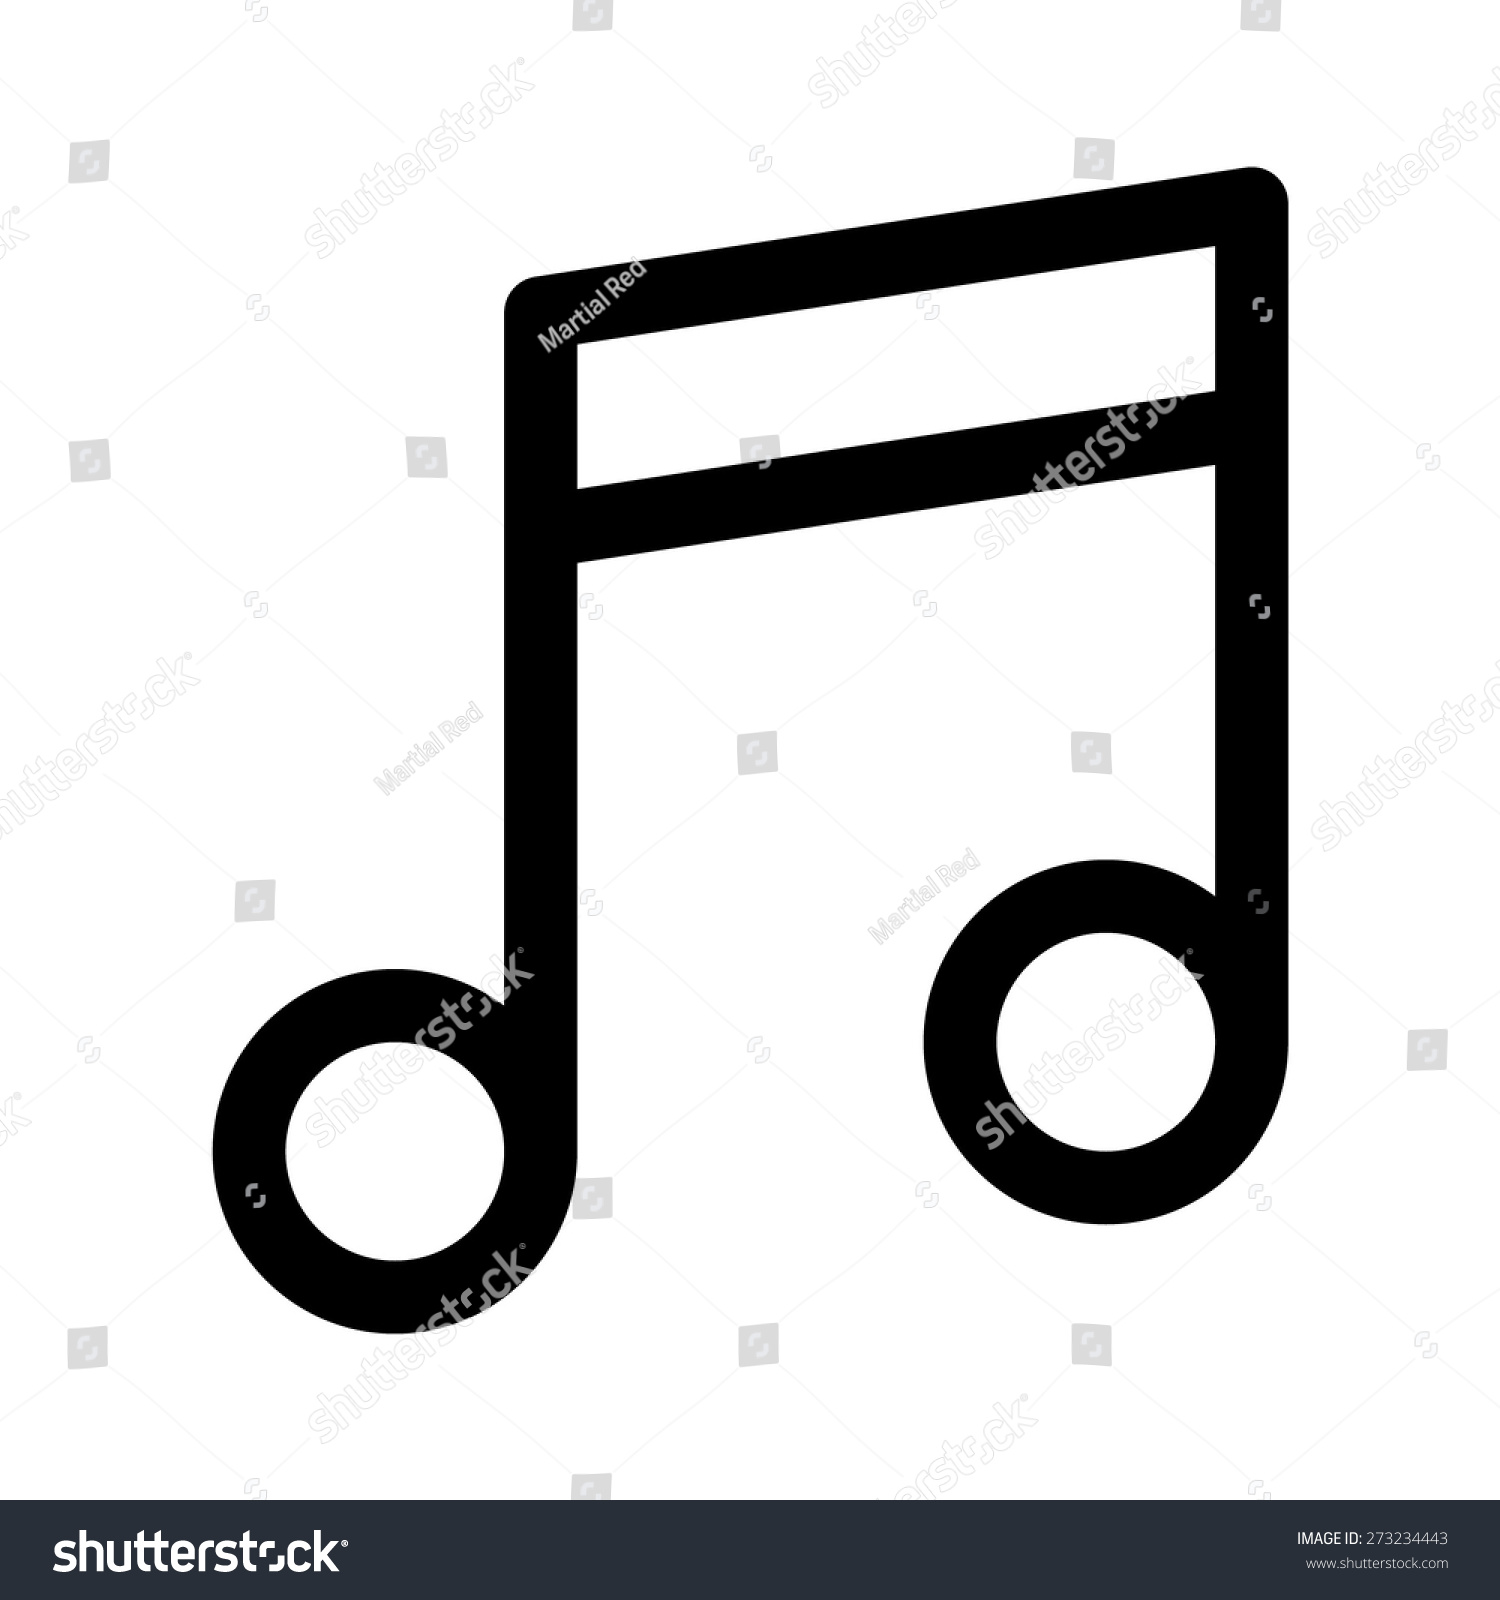 Musical Note Eight Music Note Line Stock Vector Royalty Free